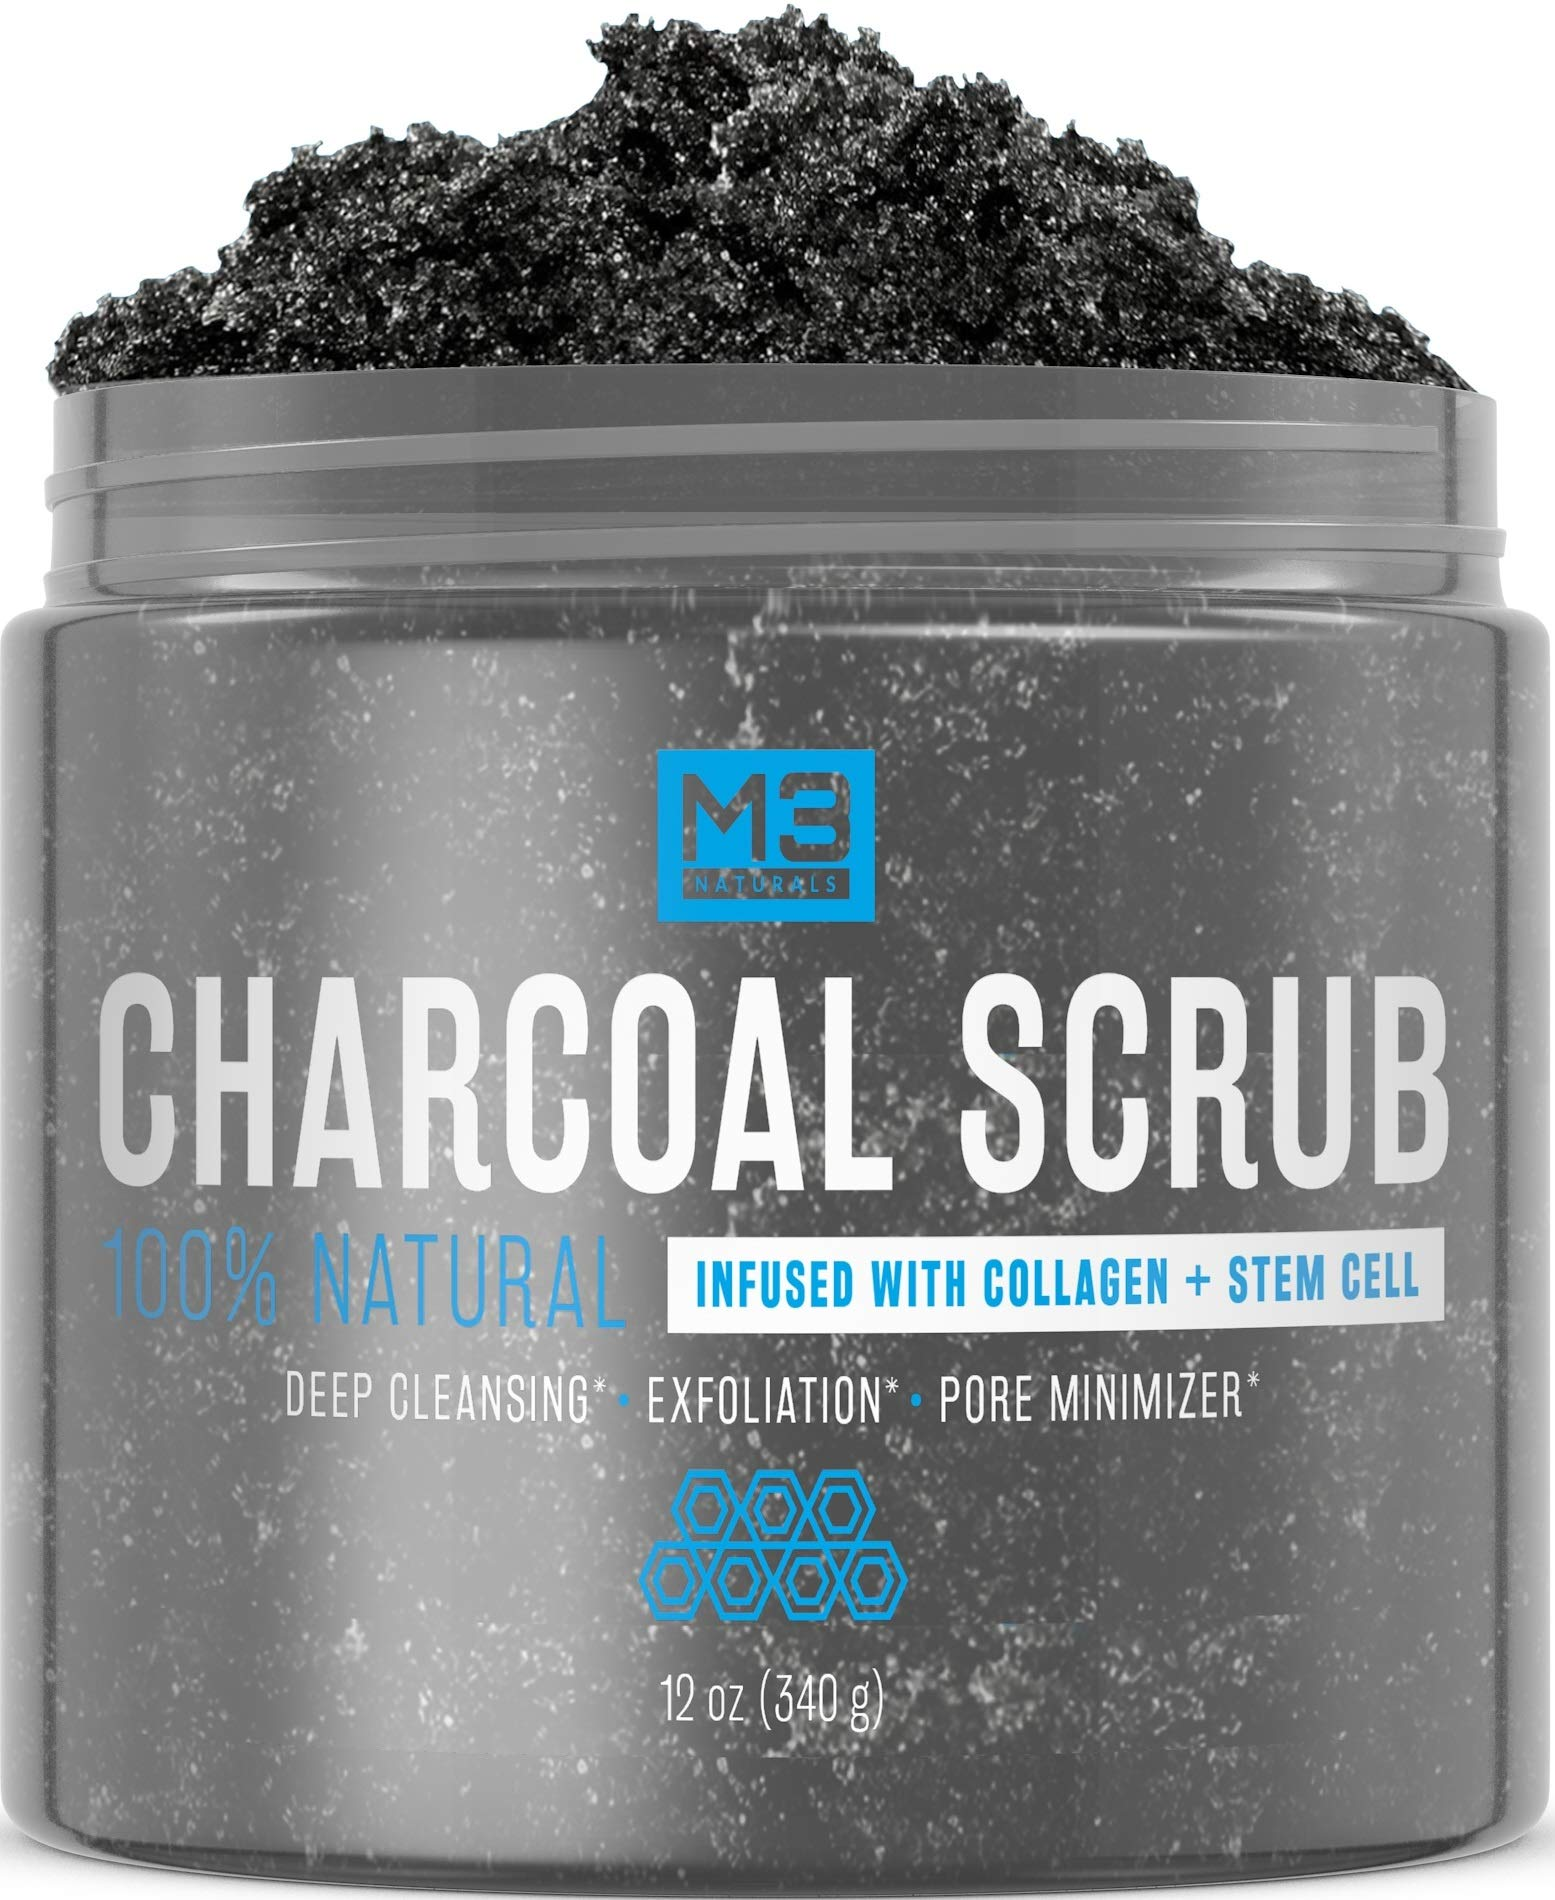 M3 Naturals Activated Charcoal Scrub Infused with Collagen and Stem Cell All Natural Body and Face Exfoliating Facial Wash Blackheads Acne Scars Pore Minimizer Exfoliator Anti Cellulite Skin Care by M3 Naturals